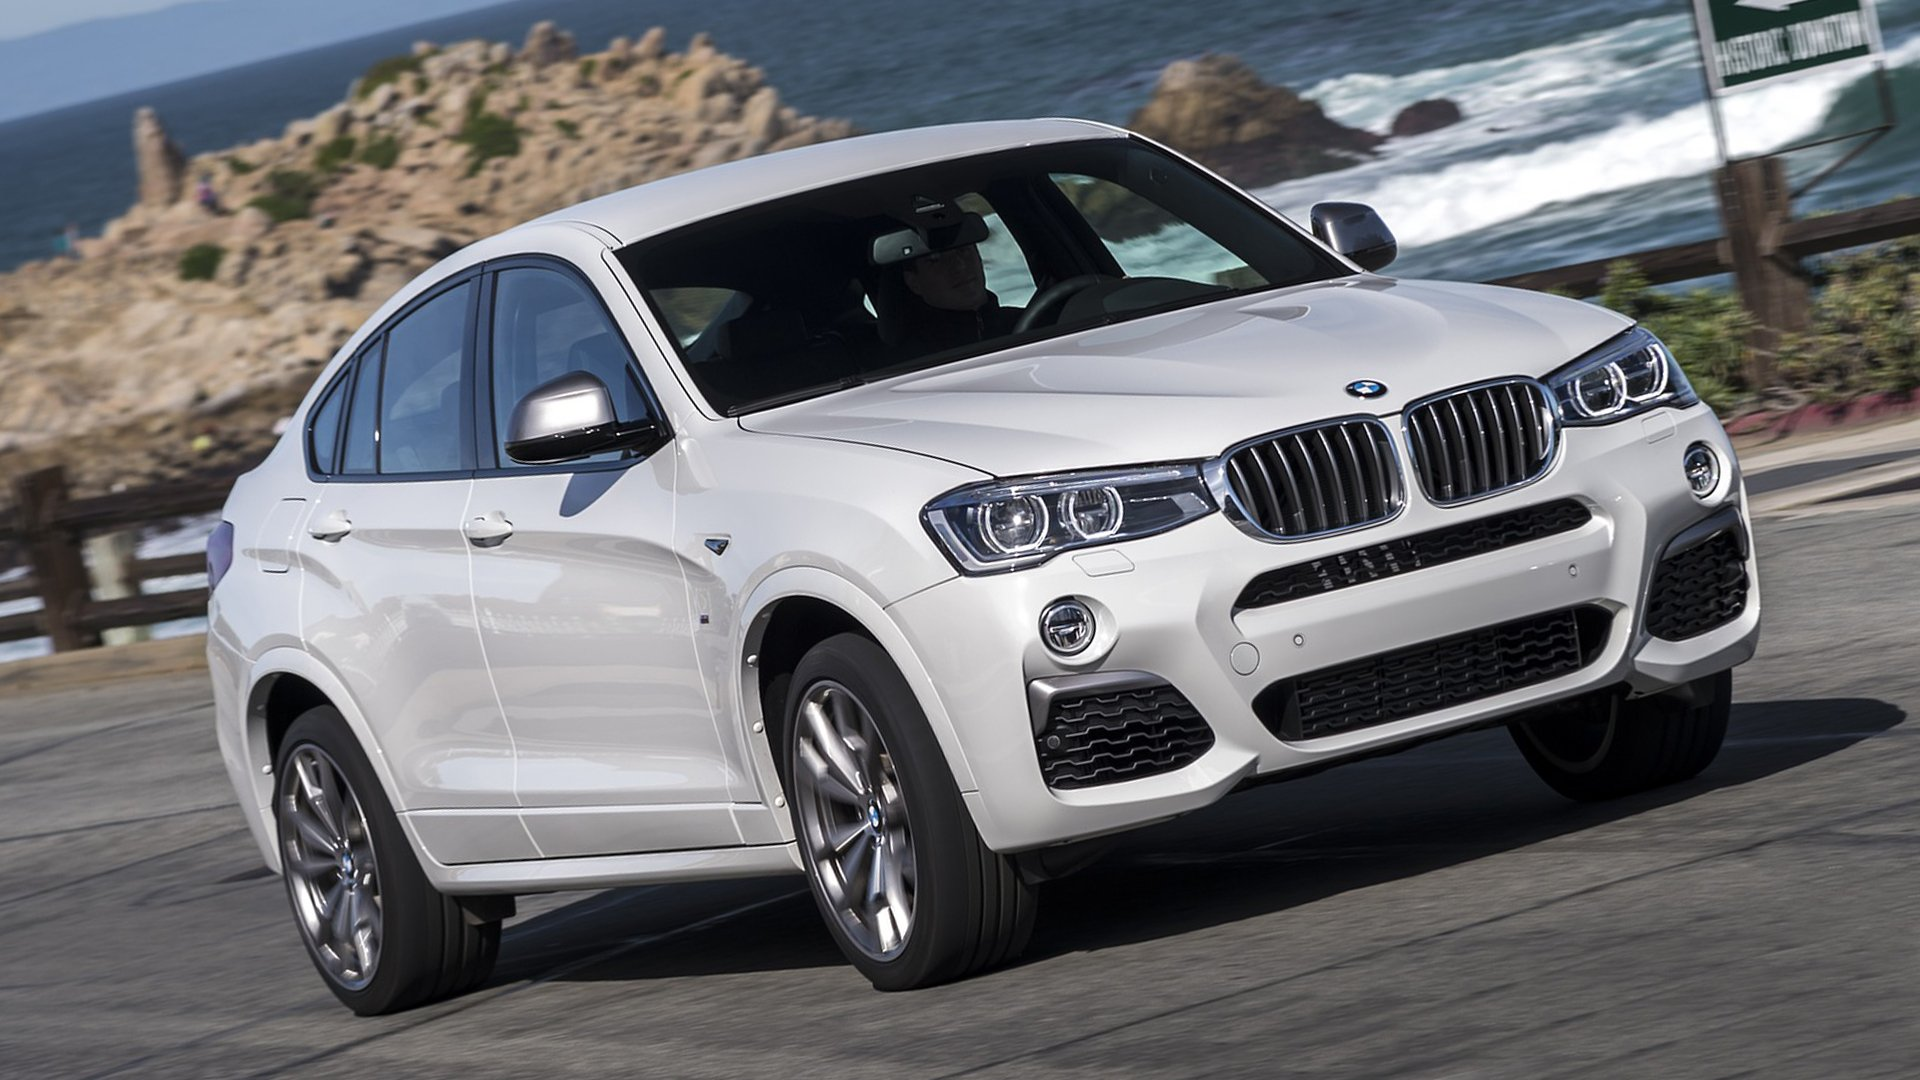 Turbo Diesel BMW X4 M40i 2019 Full HD